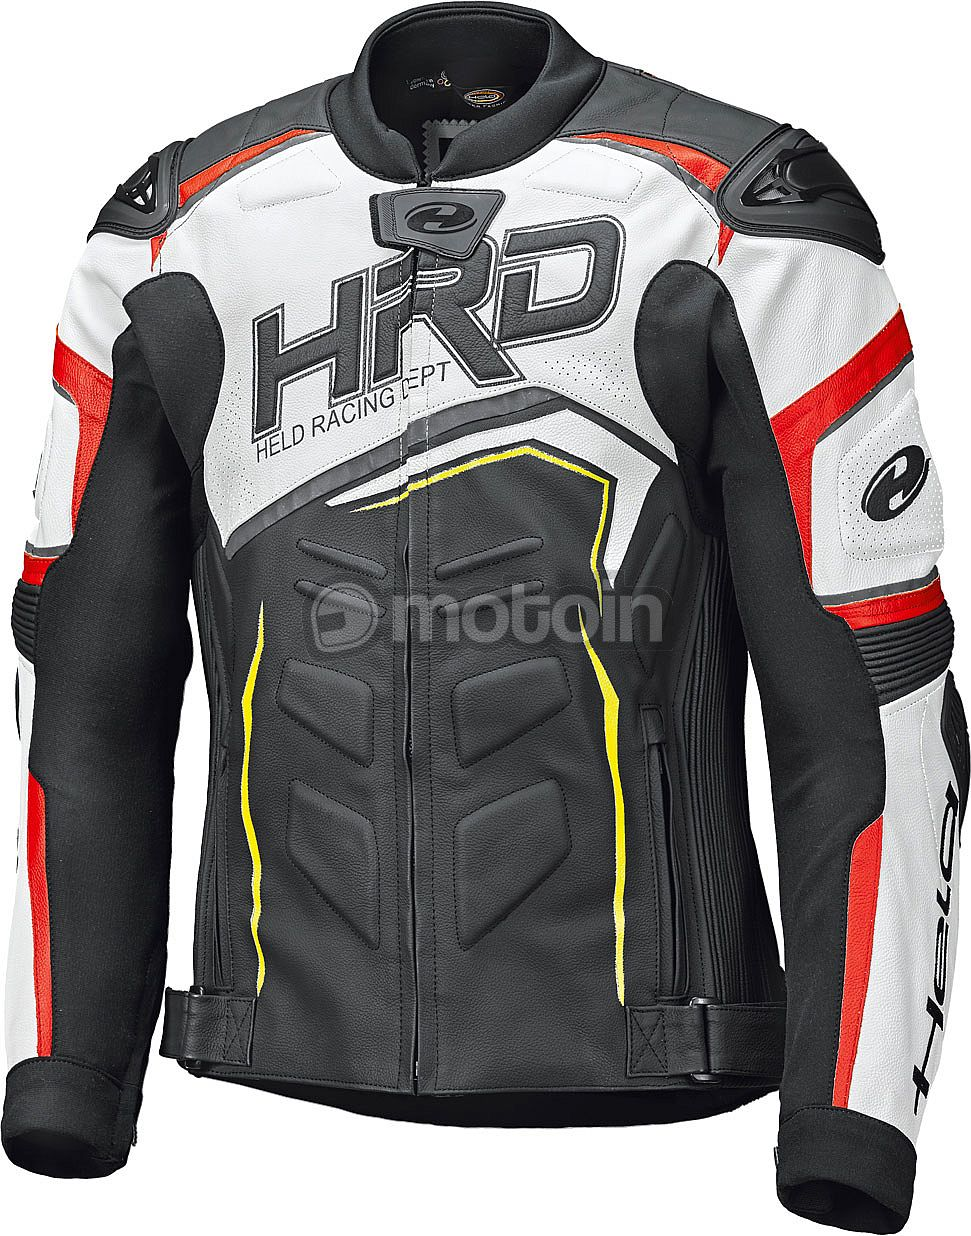 Held 2 De Chaqueta Cuero Safer rpw5gqr